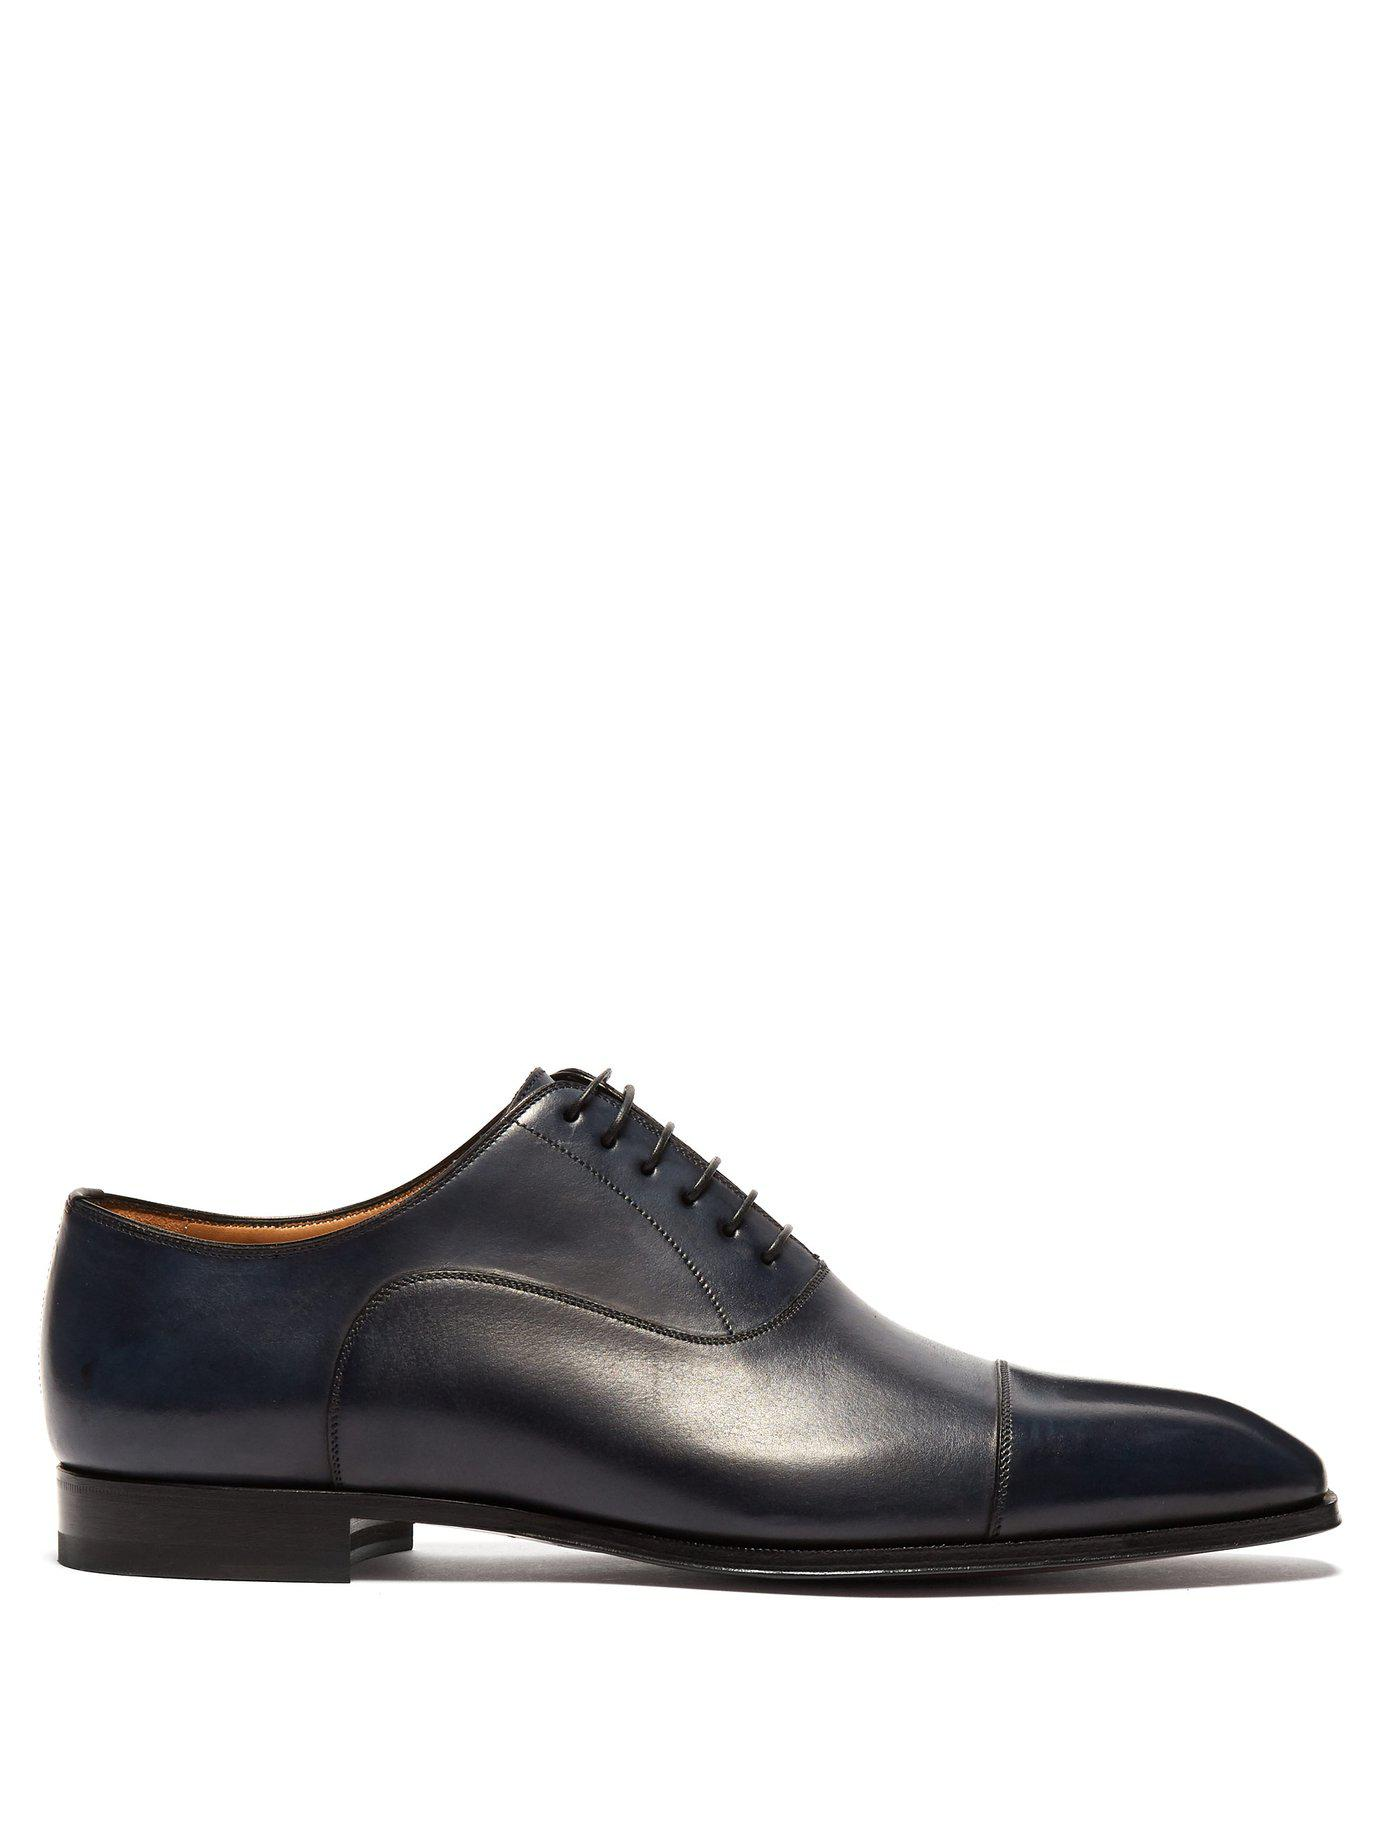 577892834bb Lyst - Christian Louboutin Cousin Greg Leather Oxford Shoes in Blue ...